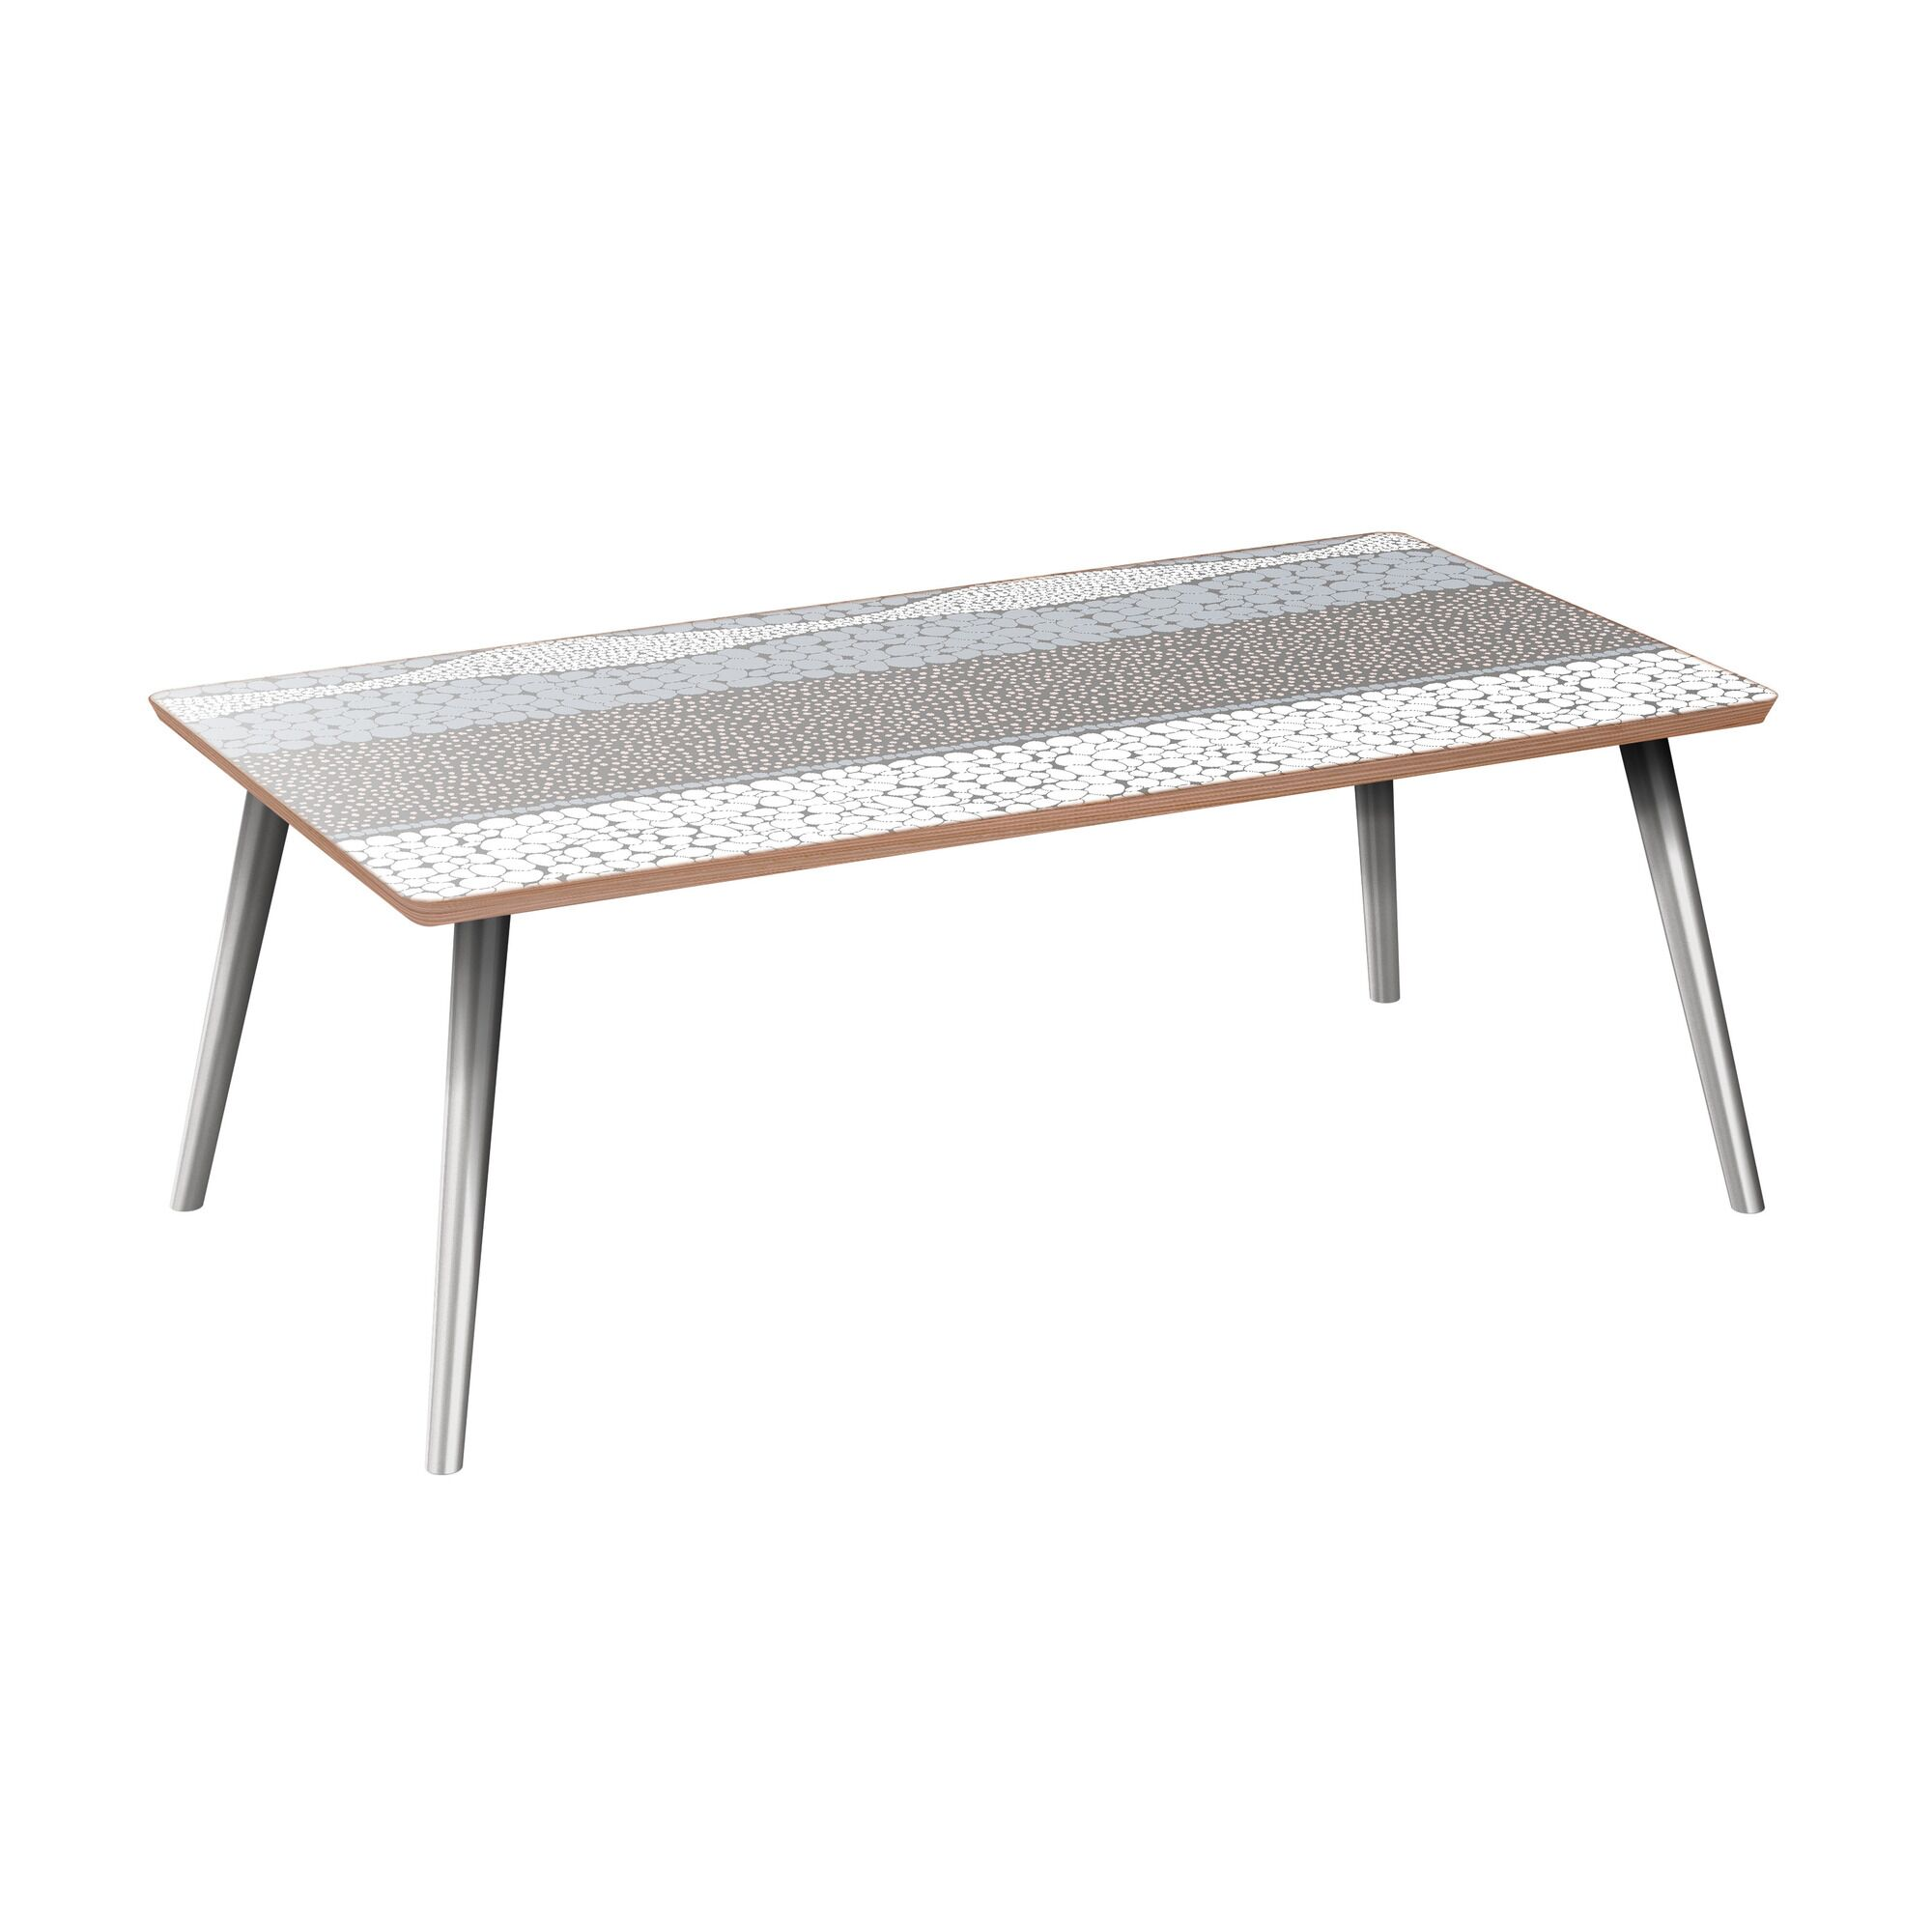 Kaity Coffee Table Table Base Color: Chrome, Table Top Color: Walnut